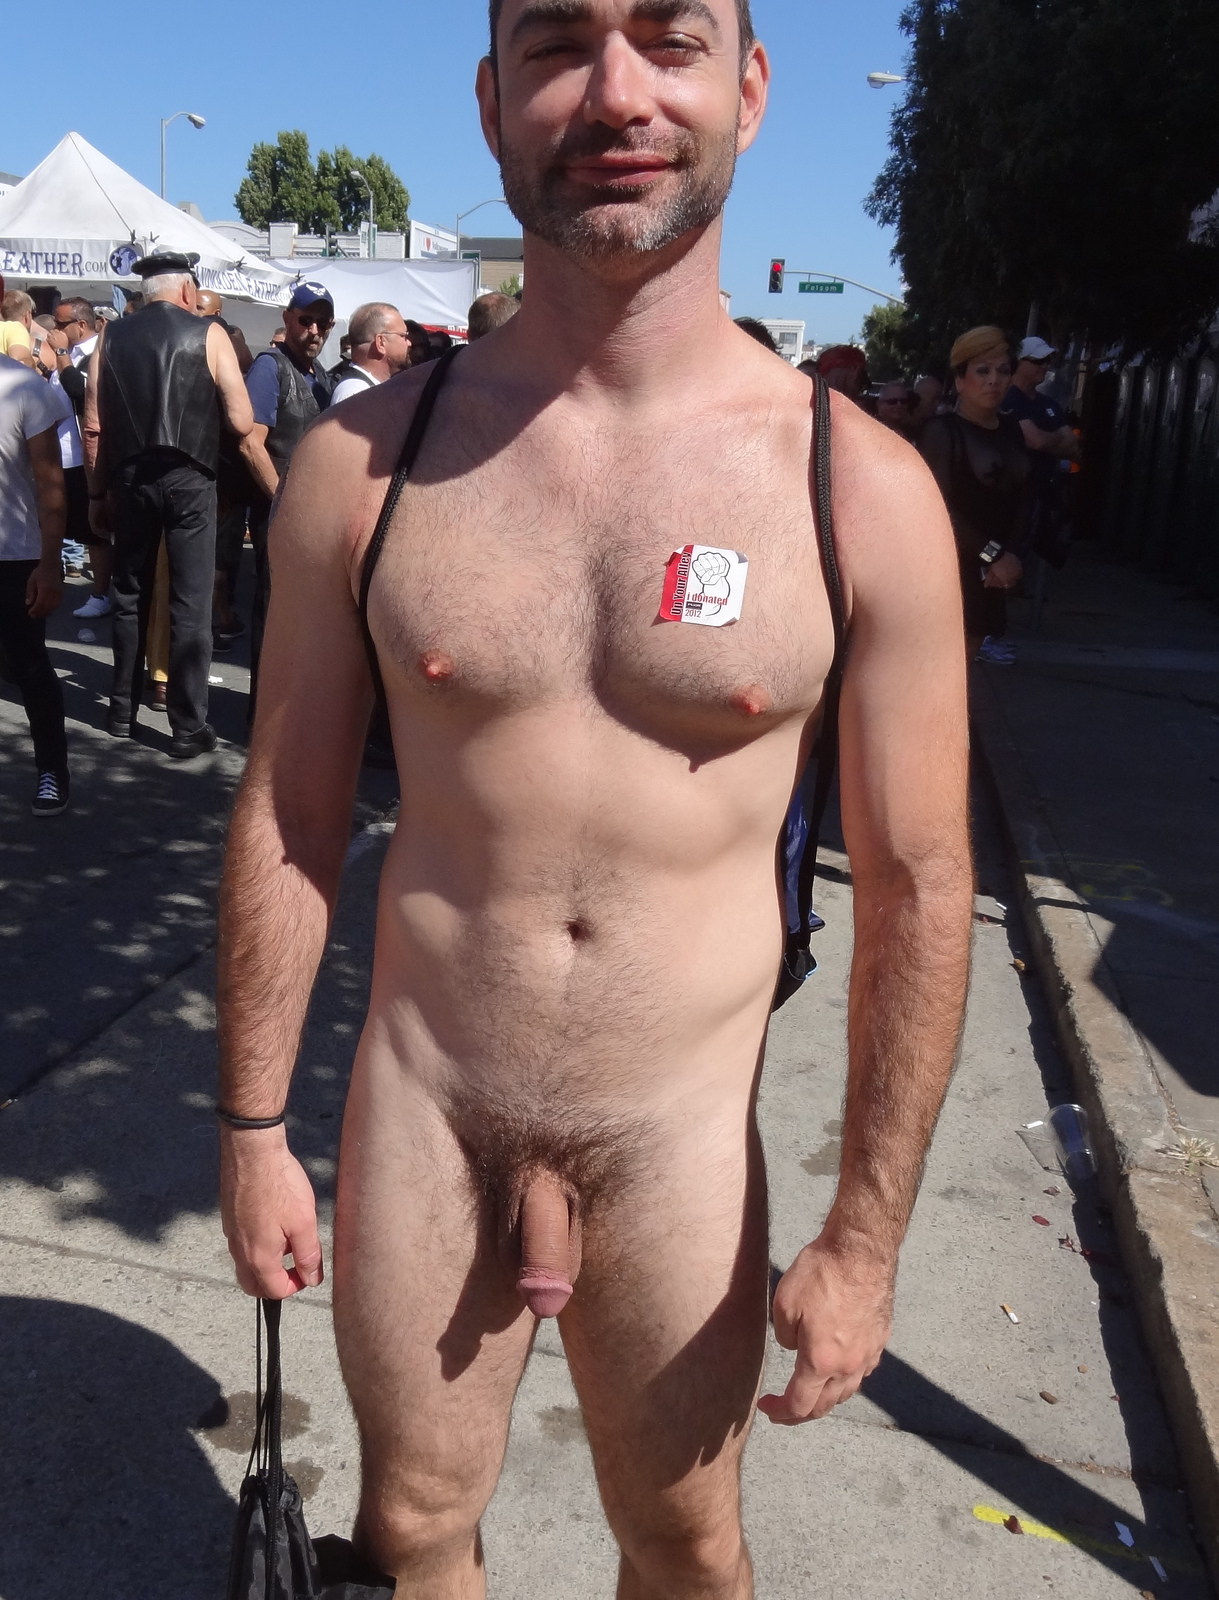 Male public nudity photos gay first time 8